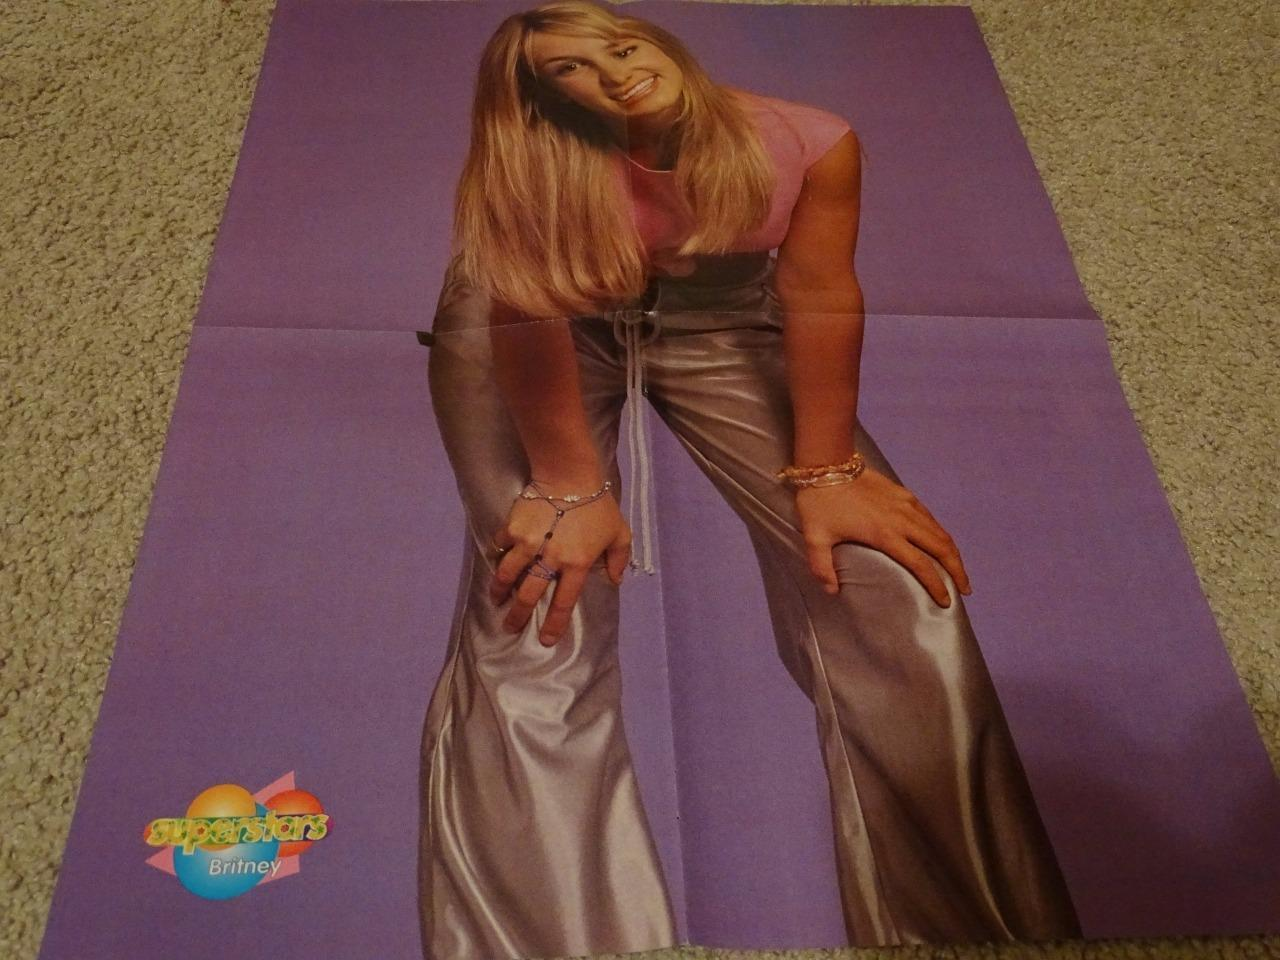 Britney Spears 98 Degrees teen magazine poster clipping Tiger Beat Teen Beat